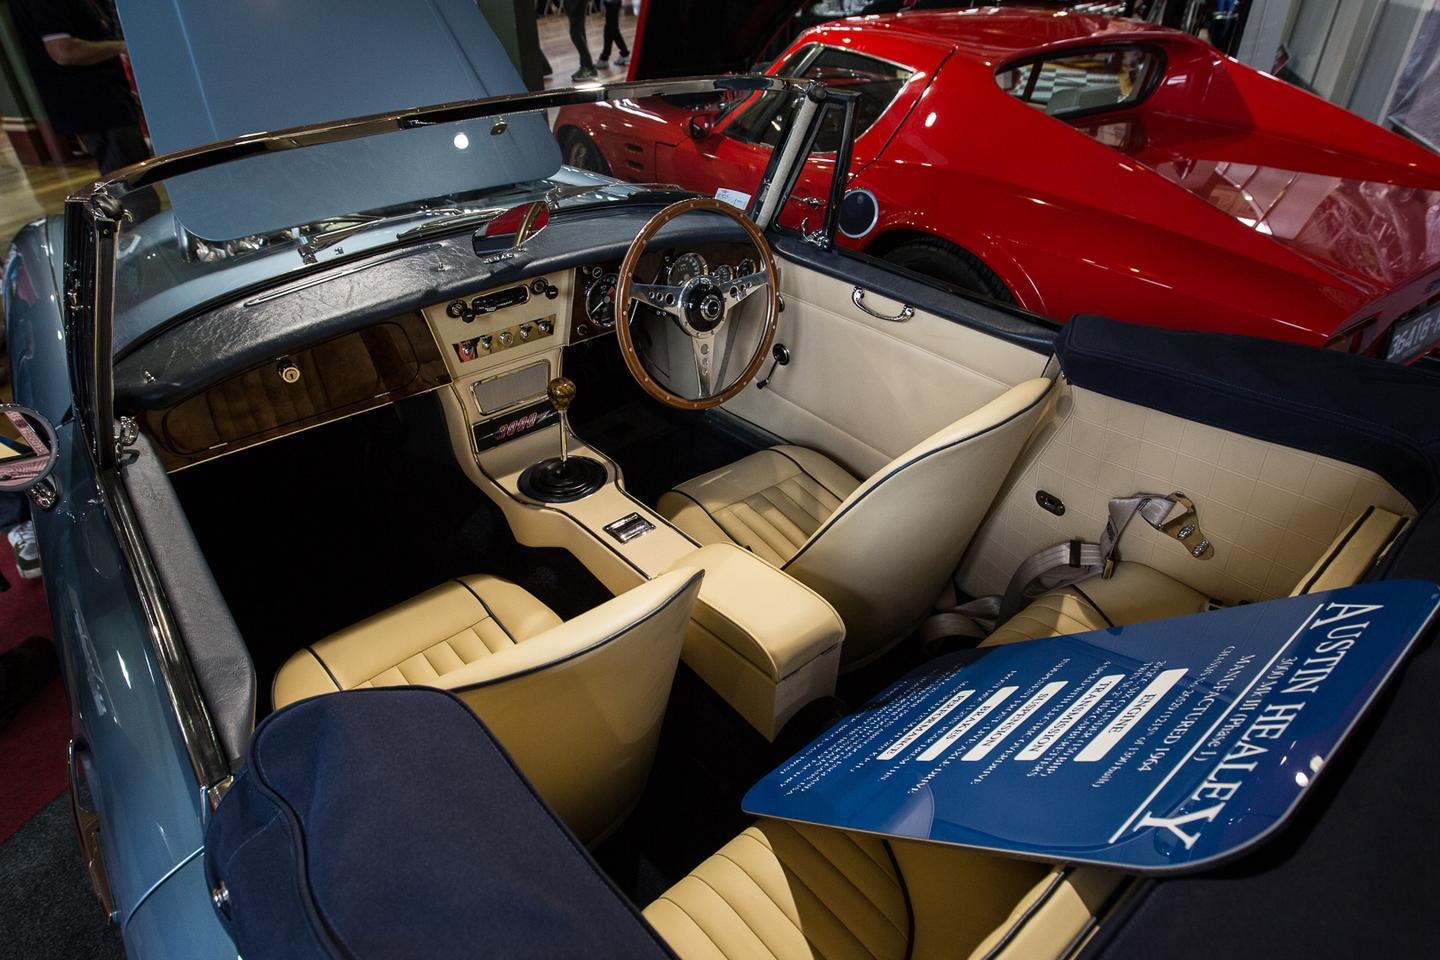 A 1964 Austin Healey 3000 MK III Phase 1 on show at Motorclassica 2014 (Photo: Nick Lavars/Gizmag)